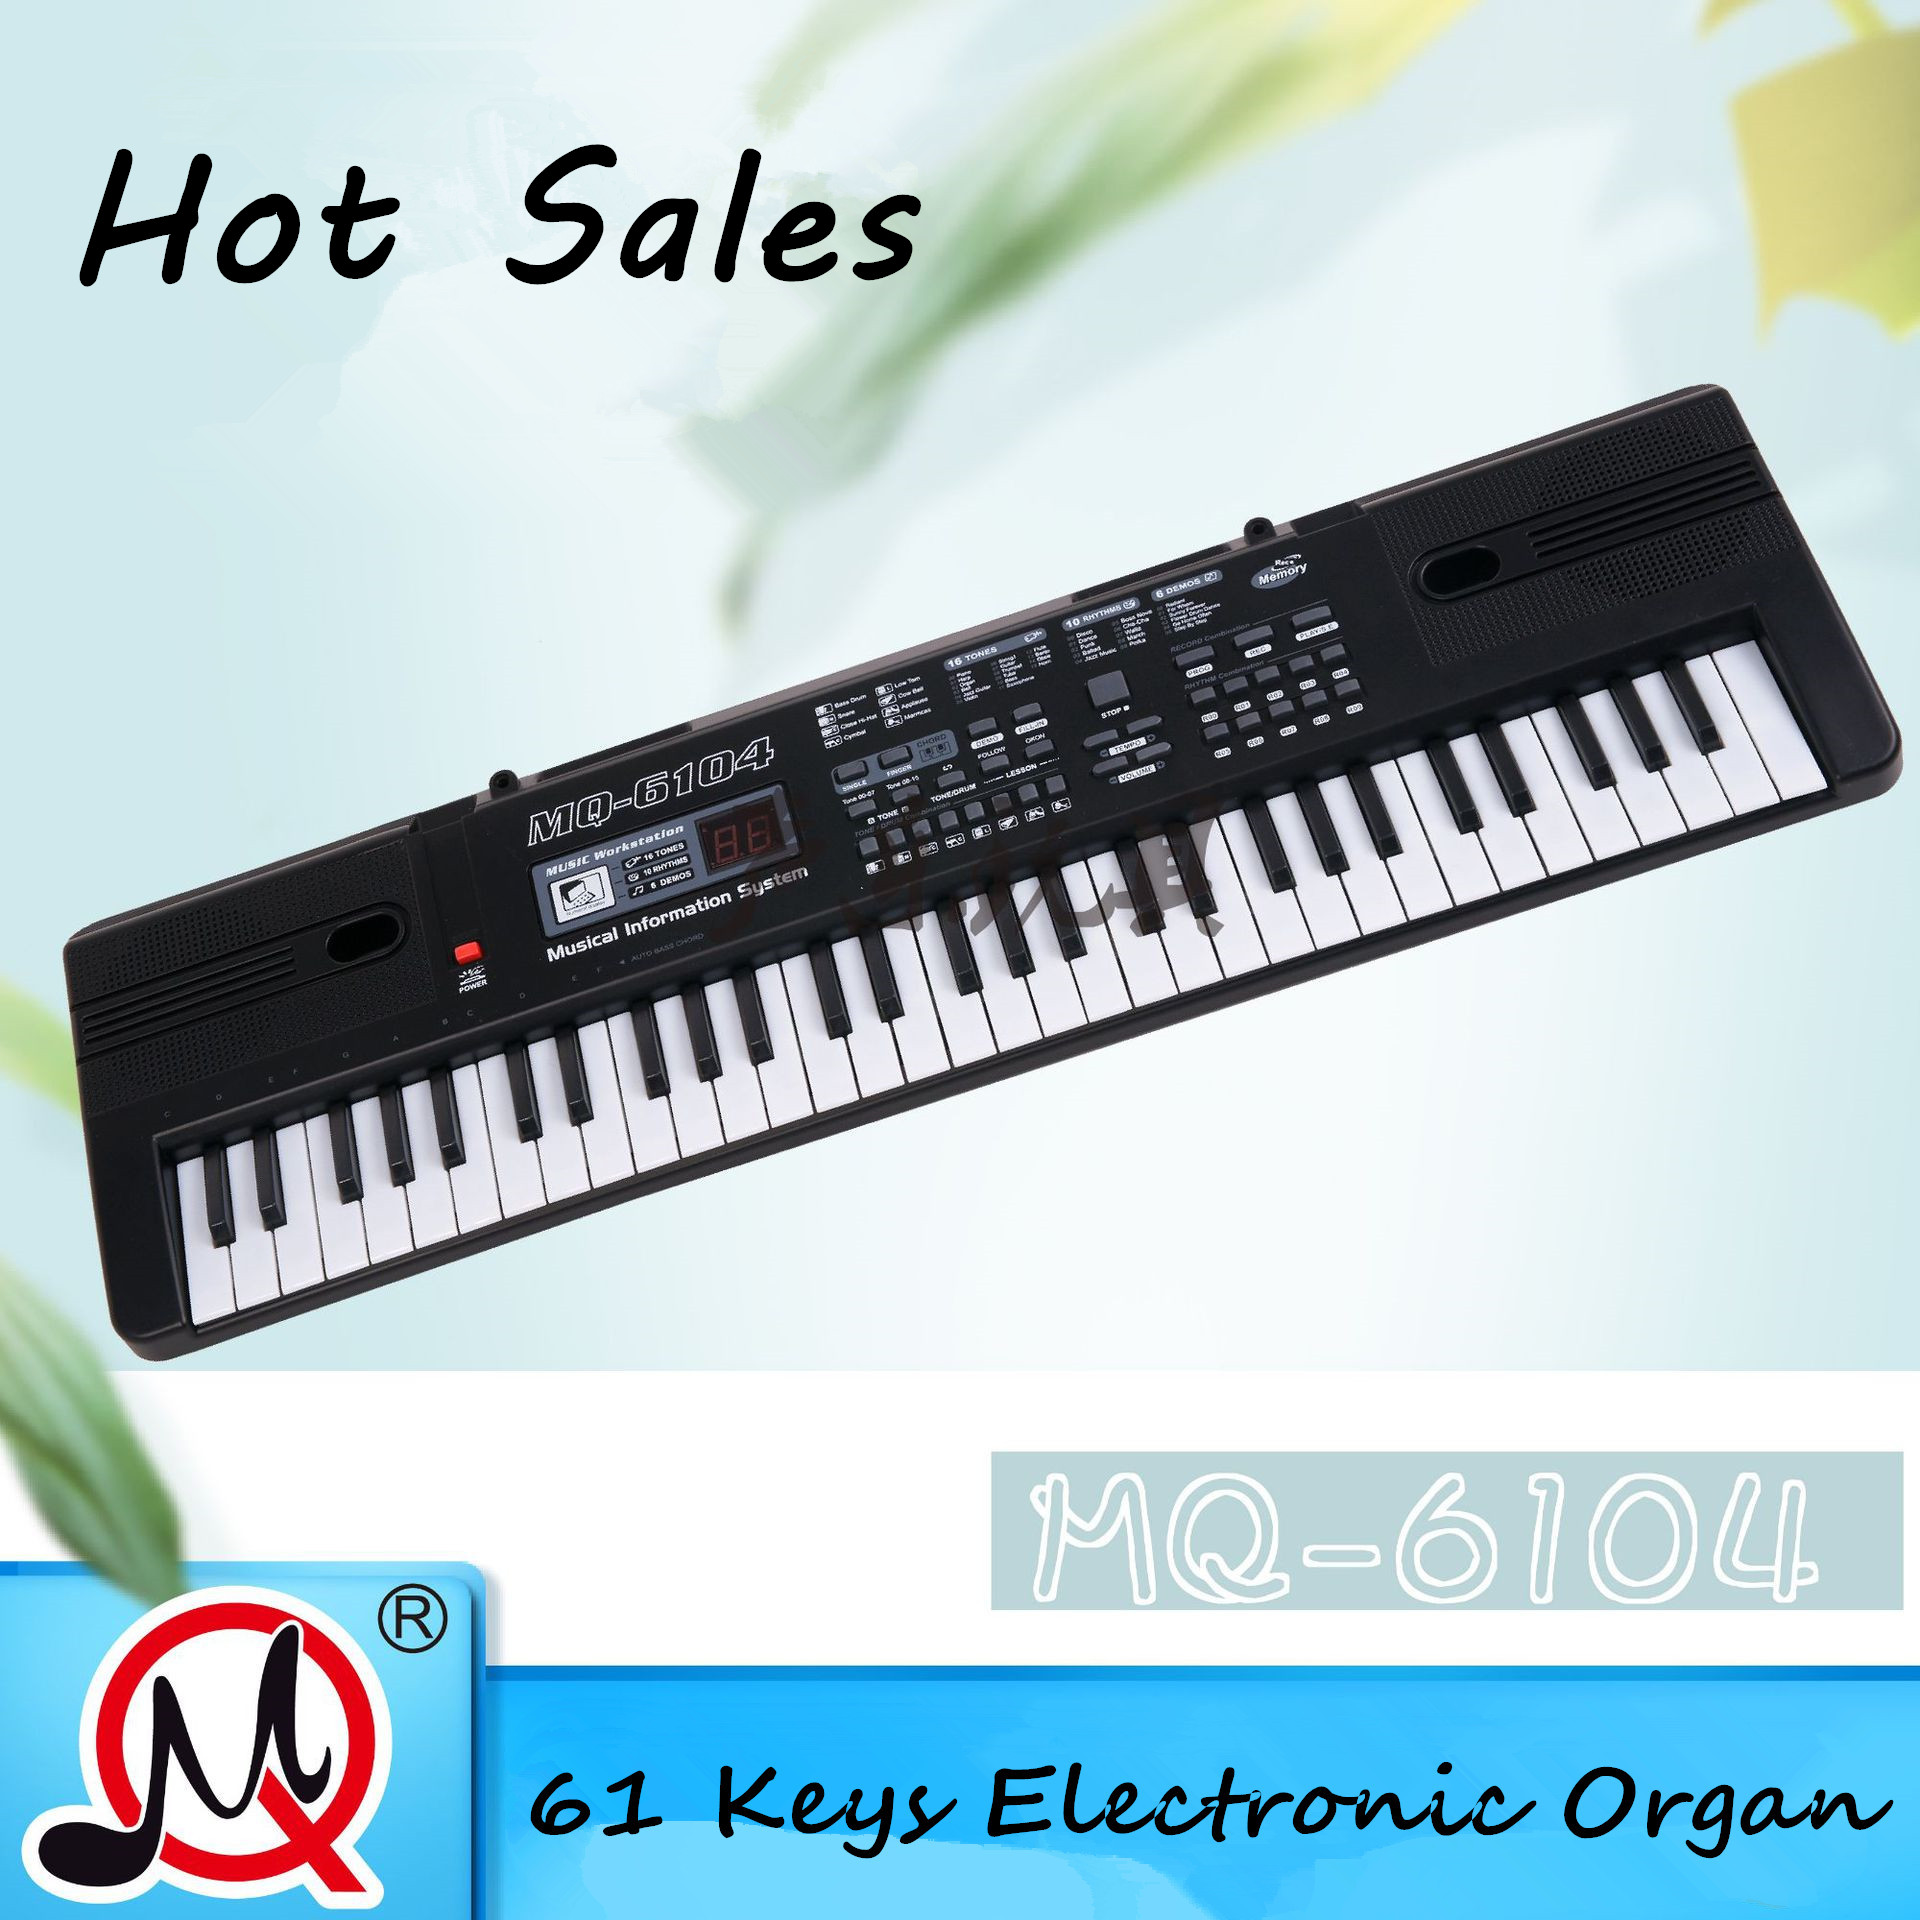 61 Keys Electronic Organ Music Keyboard Electric Piano With Microphone For Children Beginner61 Keys Electronic Organ Music Keyboard Electric Piano With Microphone For Children Beginner